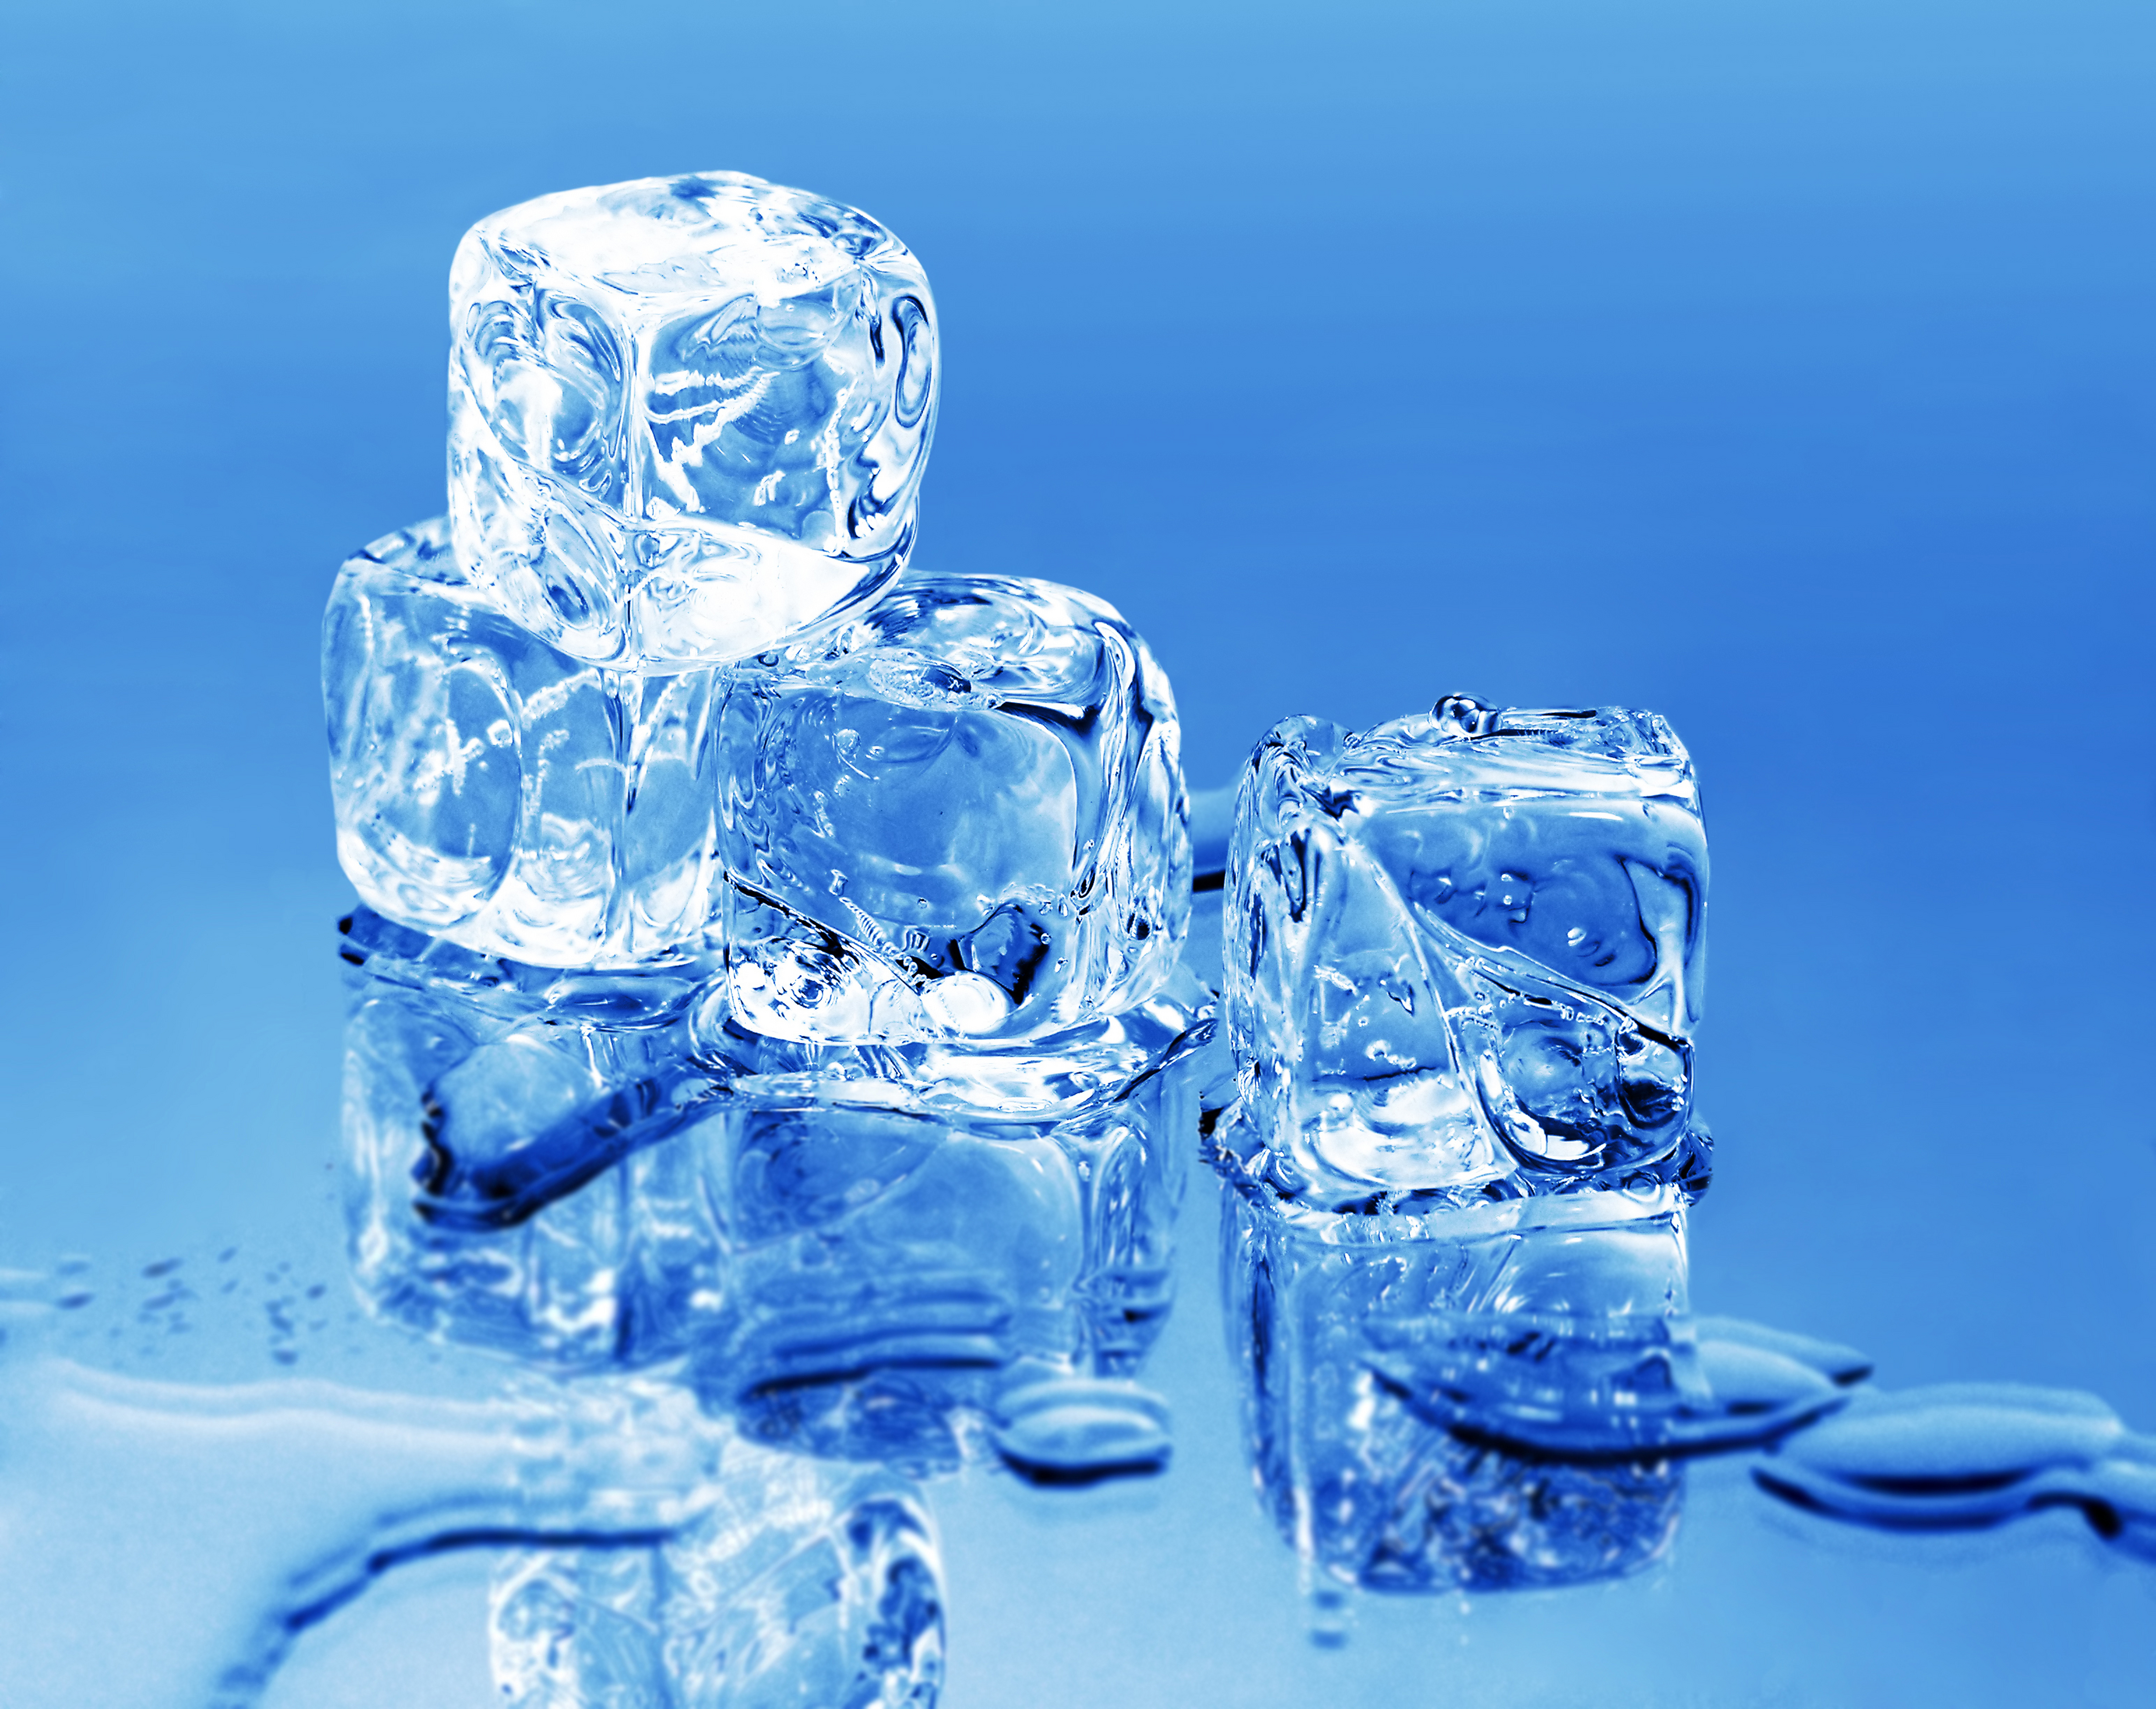 Ice Cube 5k Retina Ultra HD Wallpaper And Background Image